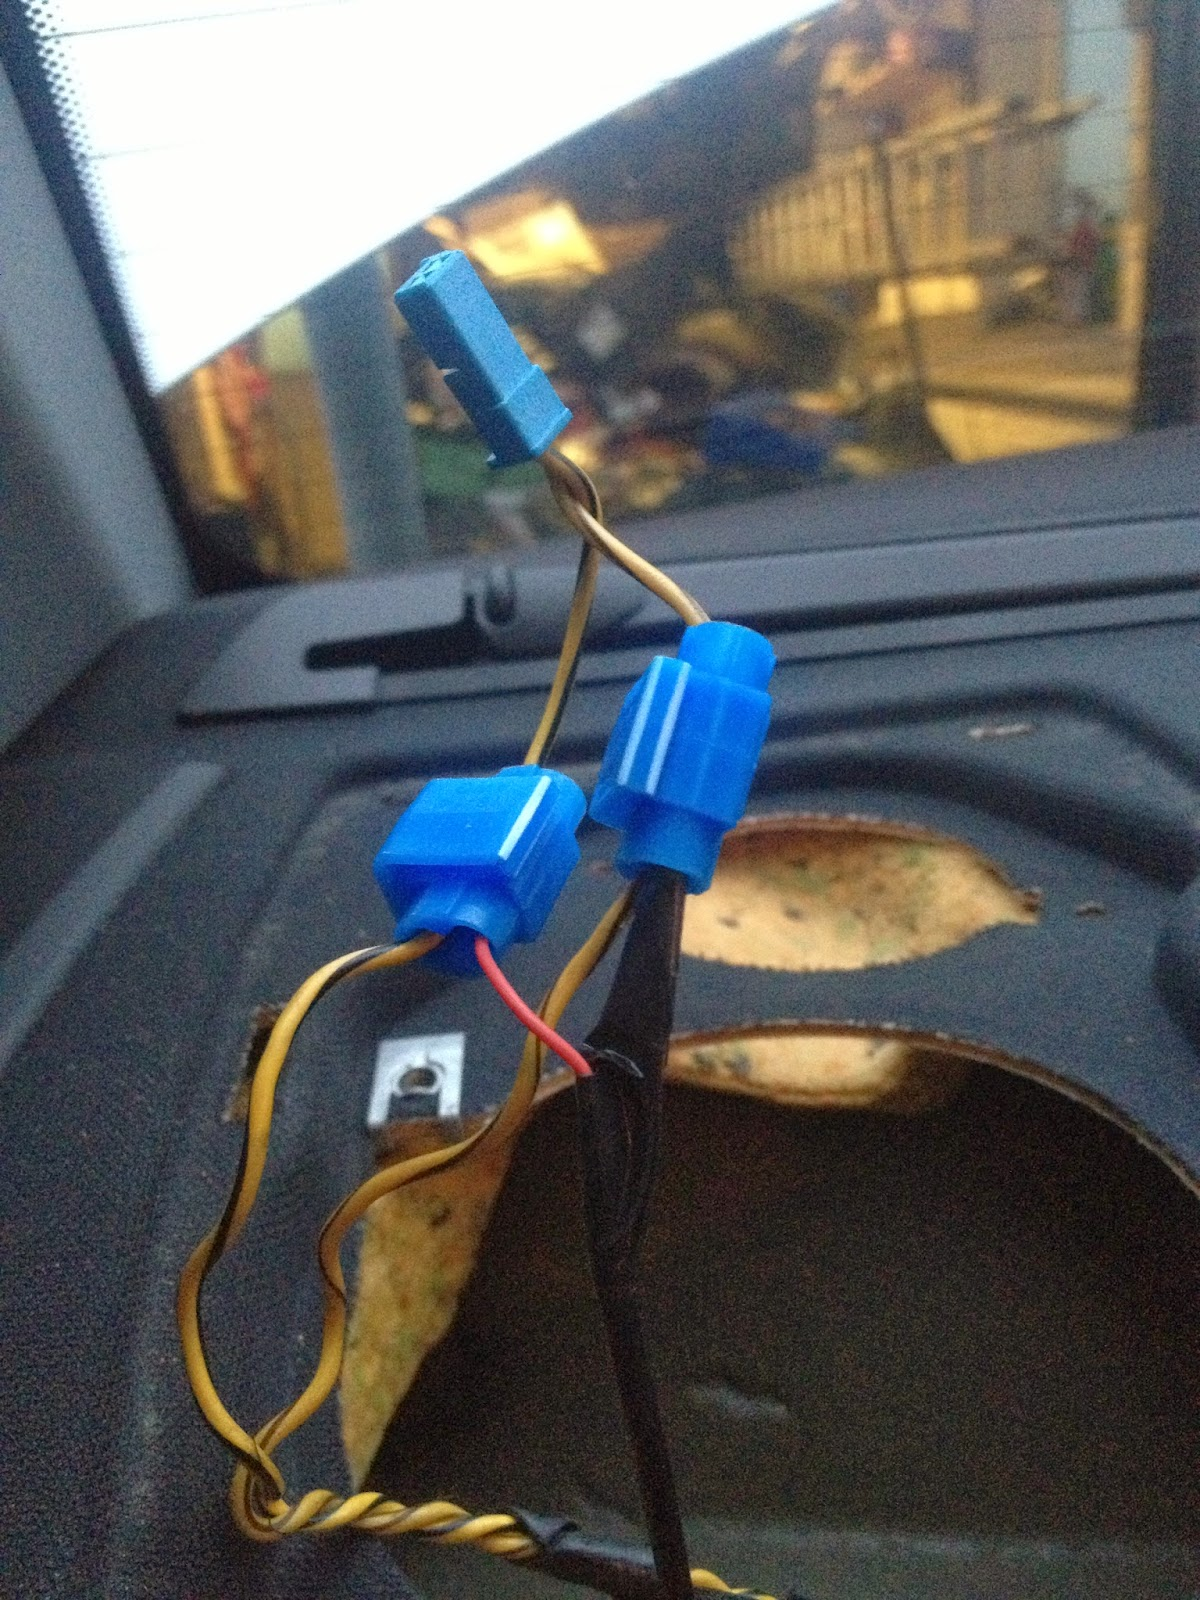 Push the wires down into the parcel-shelf and replace the speakers/grilles.